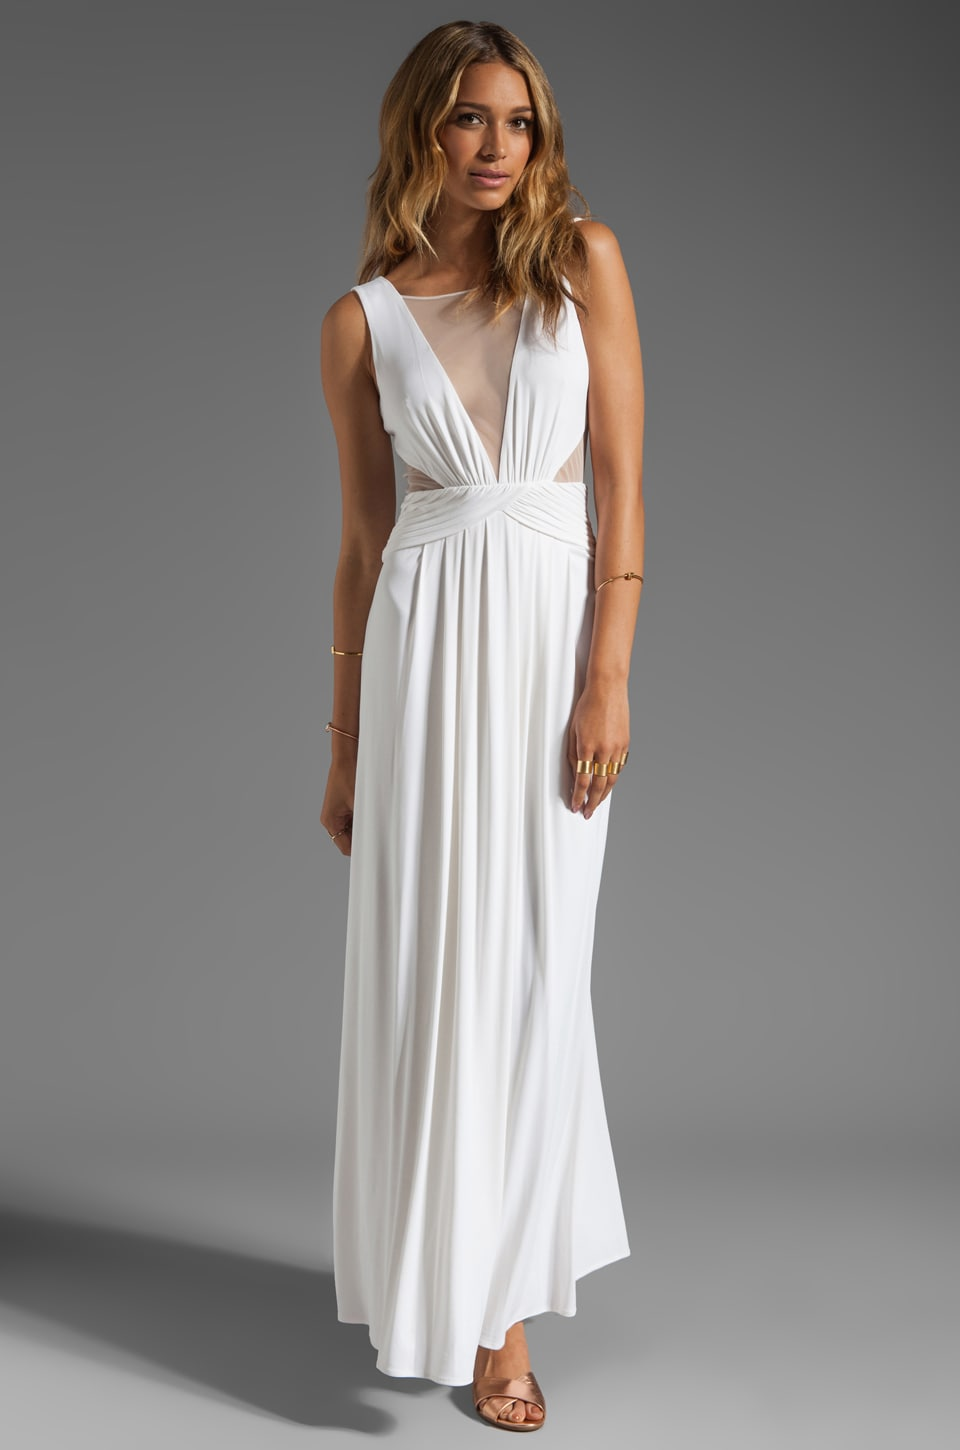 BCBGMAXAZRIA Cut Out Maxi Dress in White